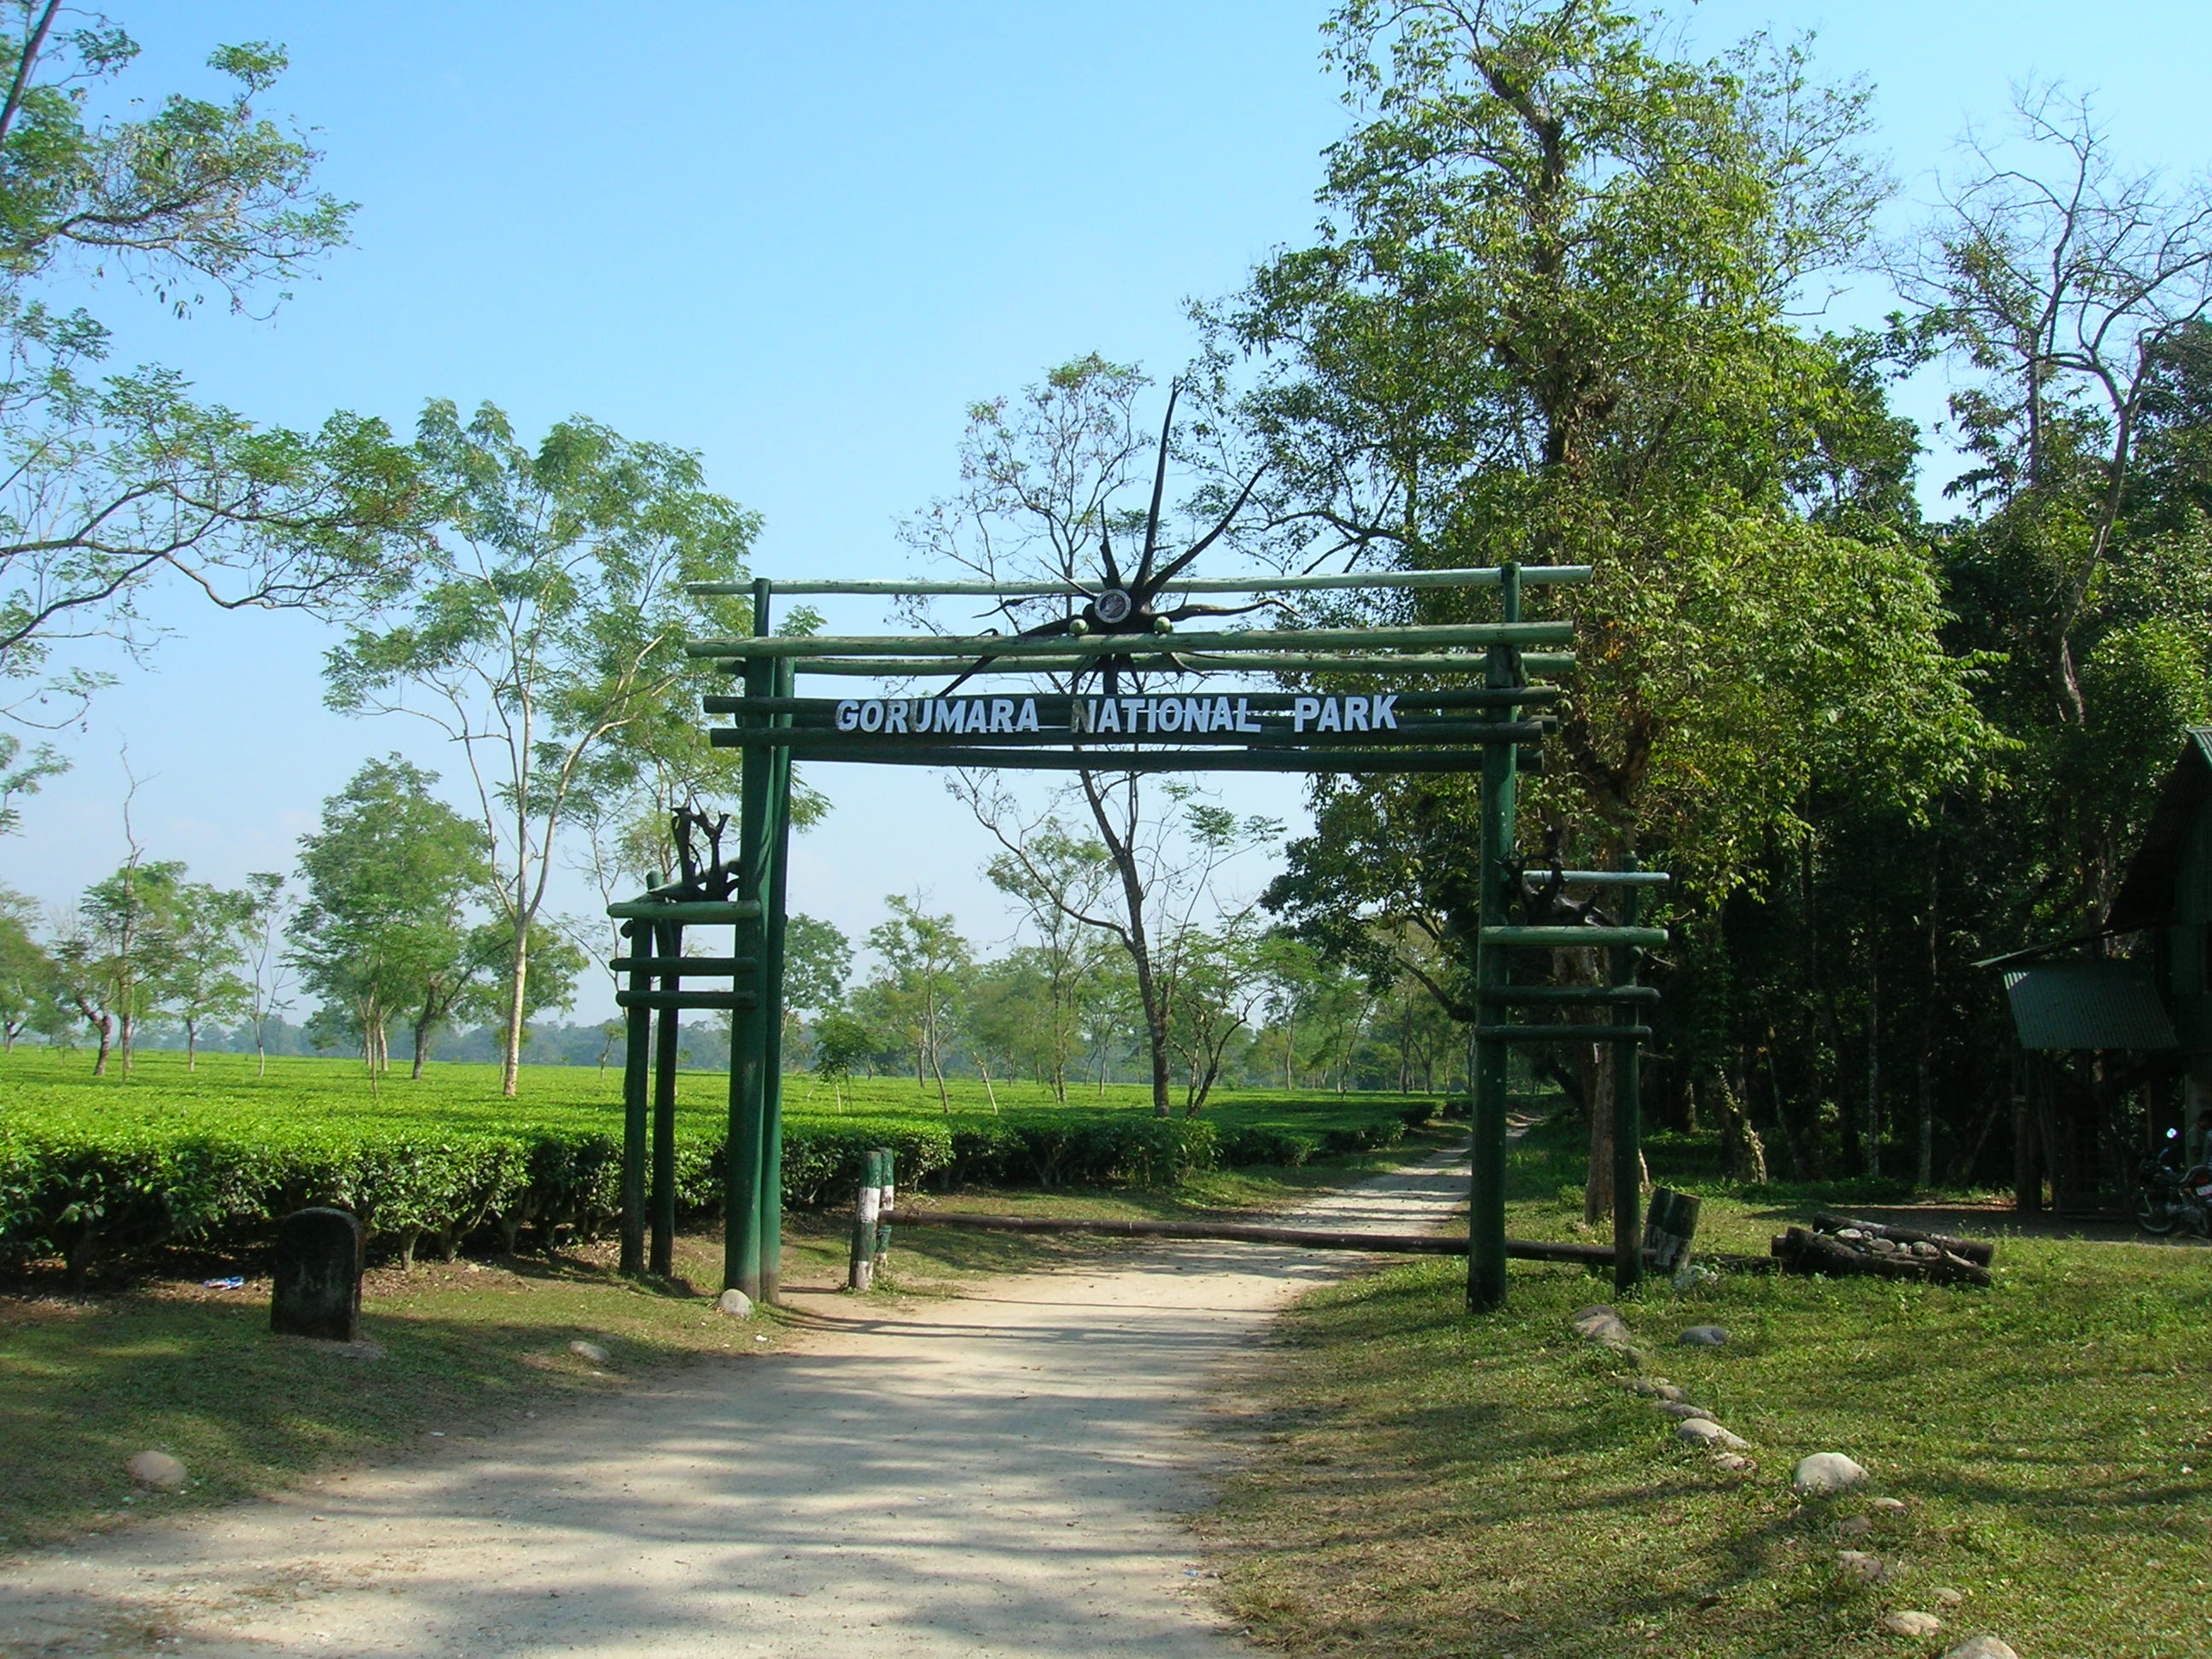 Entrance of Gorumara national park